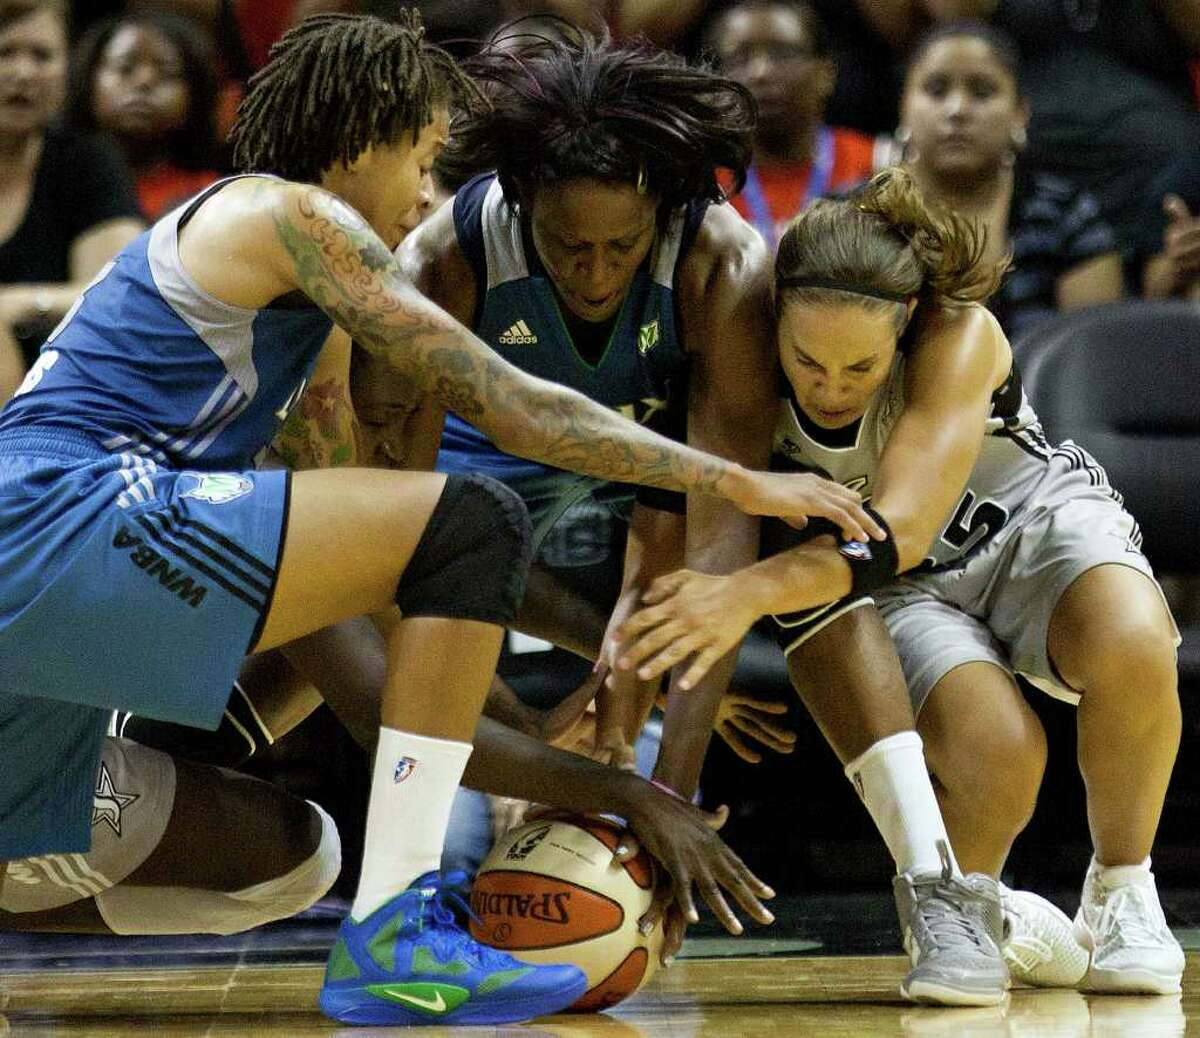 Silver Stars guard Becky Hammon fights Minnesota Lynx players Taj McWilliams-Franklin and Seimone Augustus for a loose ball on Sunday, July 31, 2011, at the AT&T Center. Hammon had 15 points in the Stars' 70-69 loss to the Lynx.